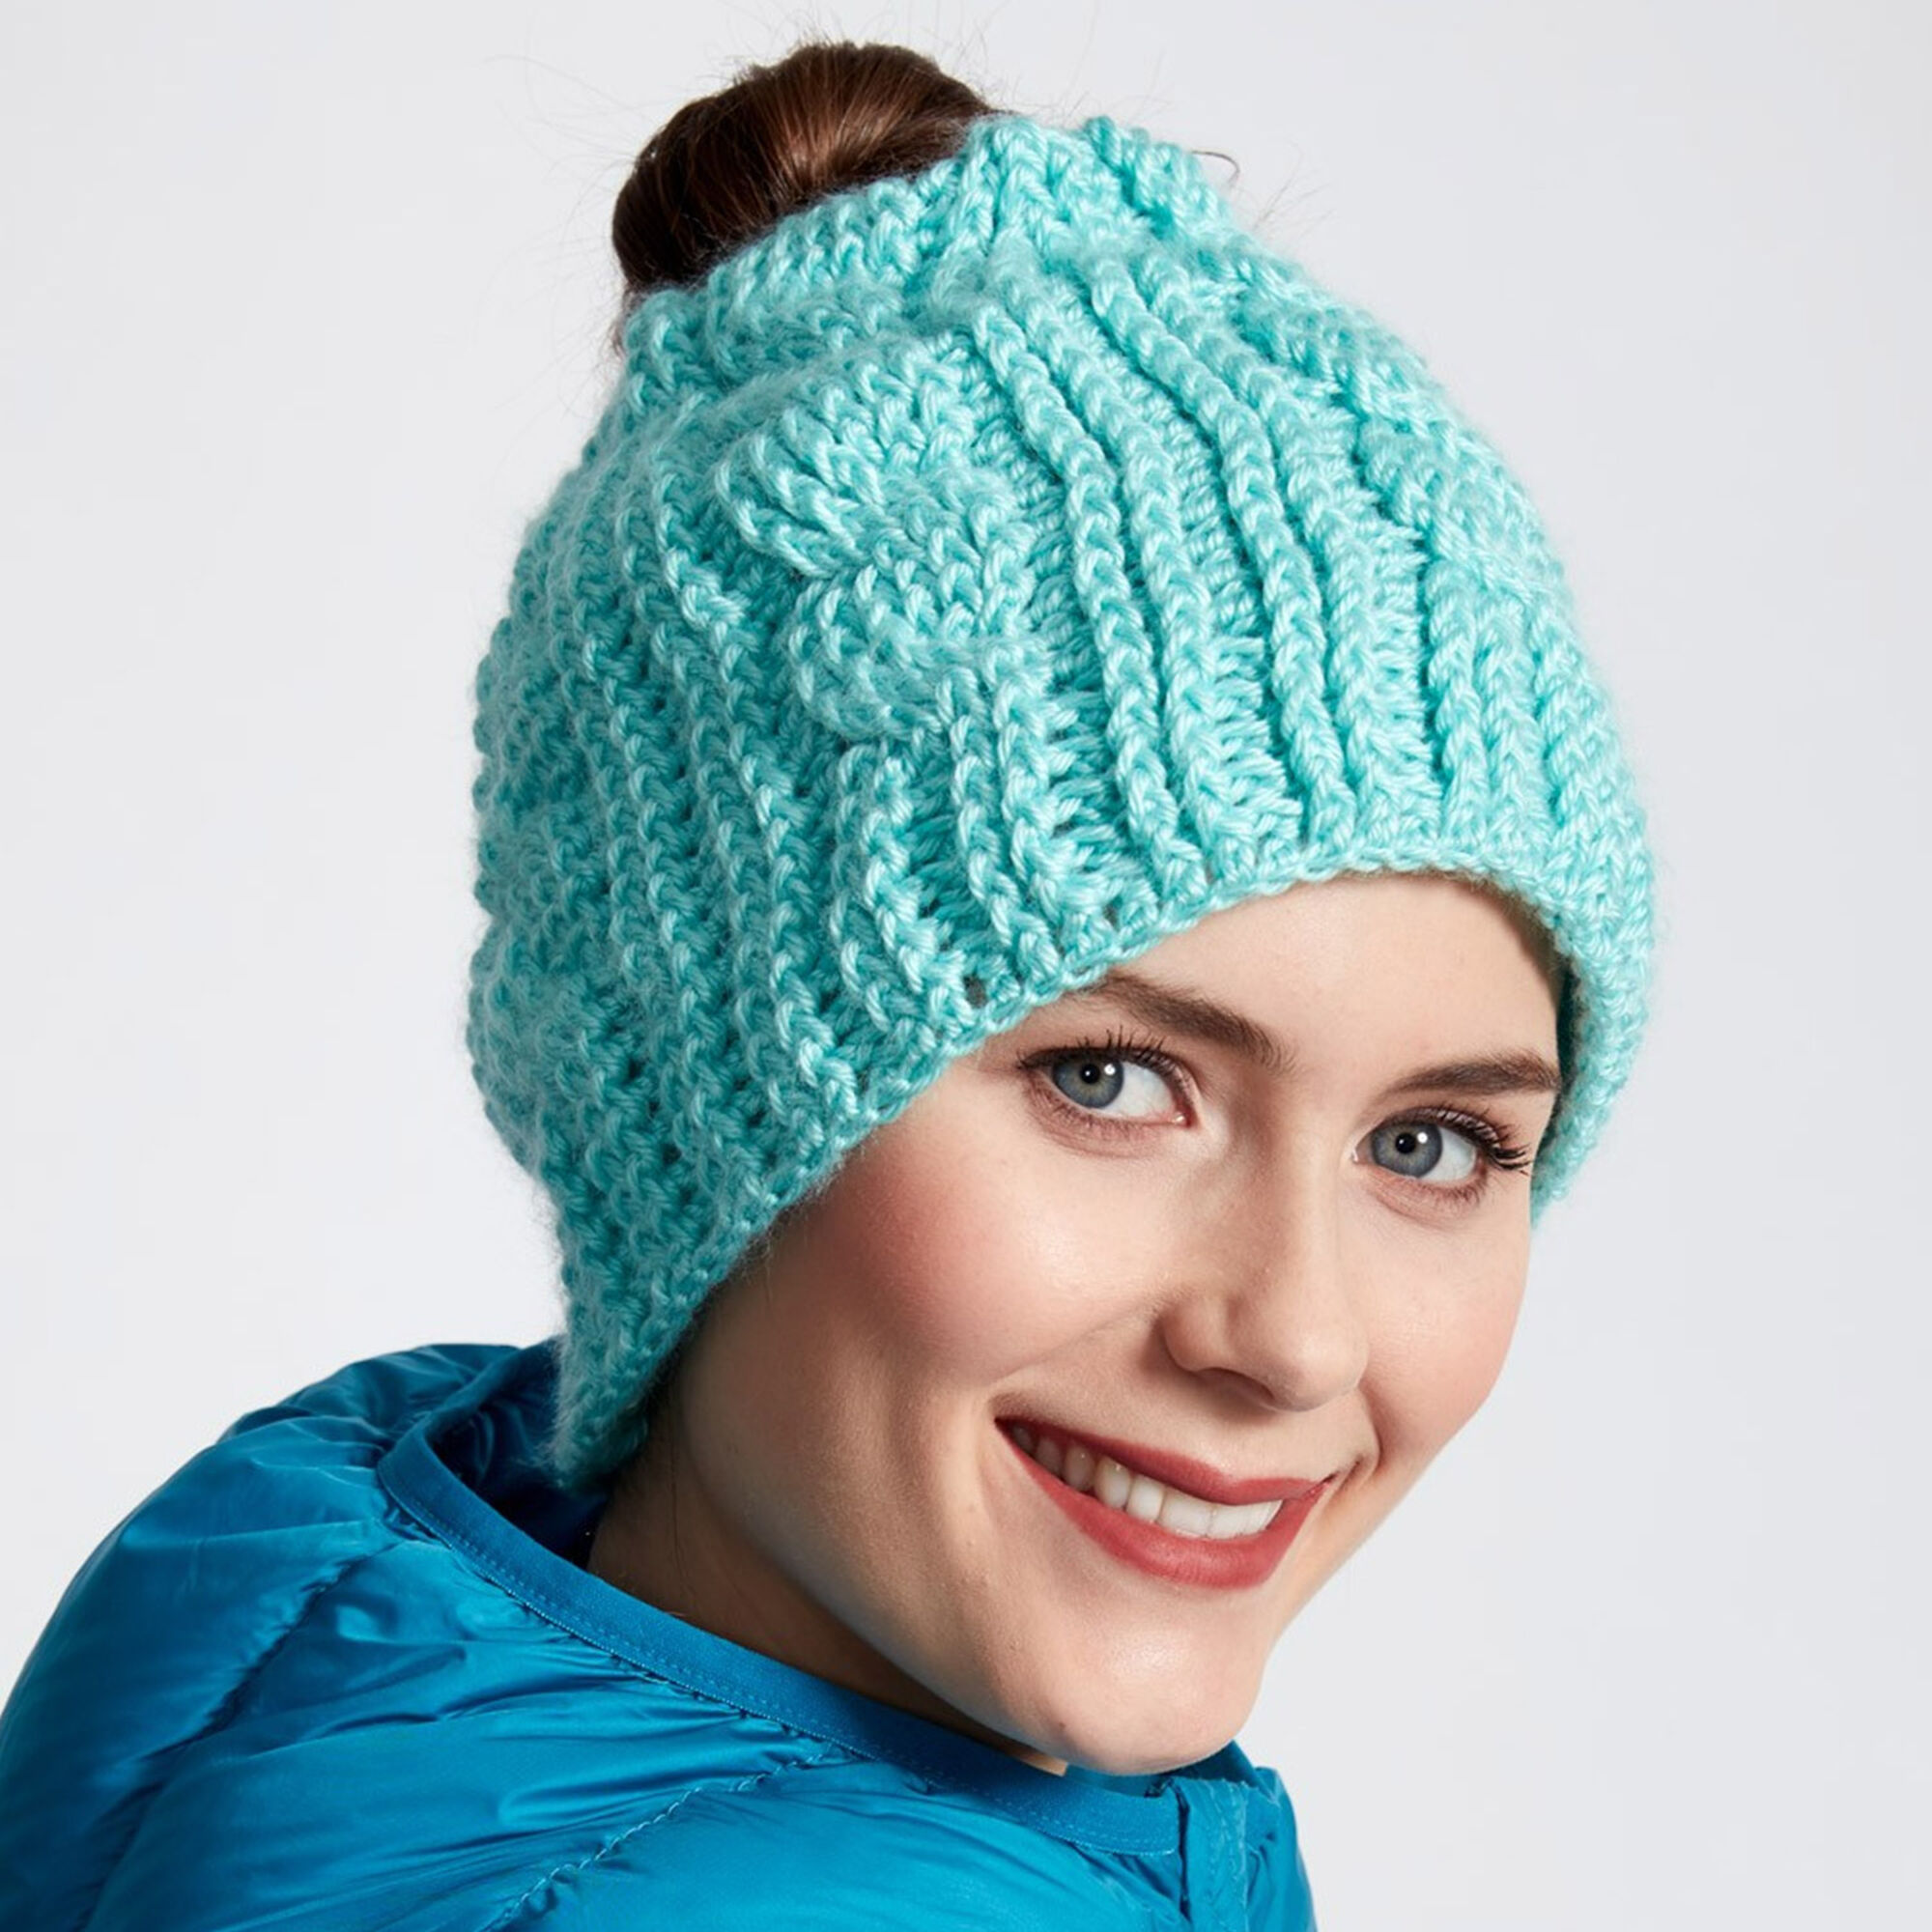 ... Caron Twist Stitch Messy Bun Crochet Hat cf650c5f515f